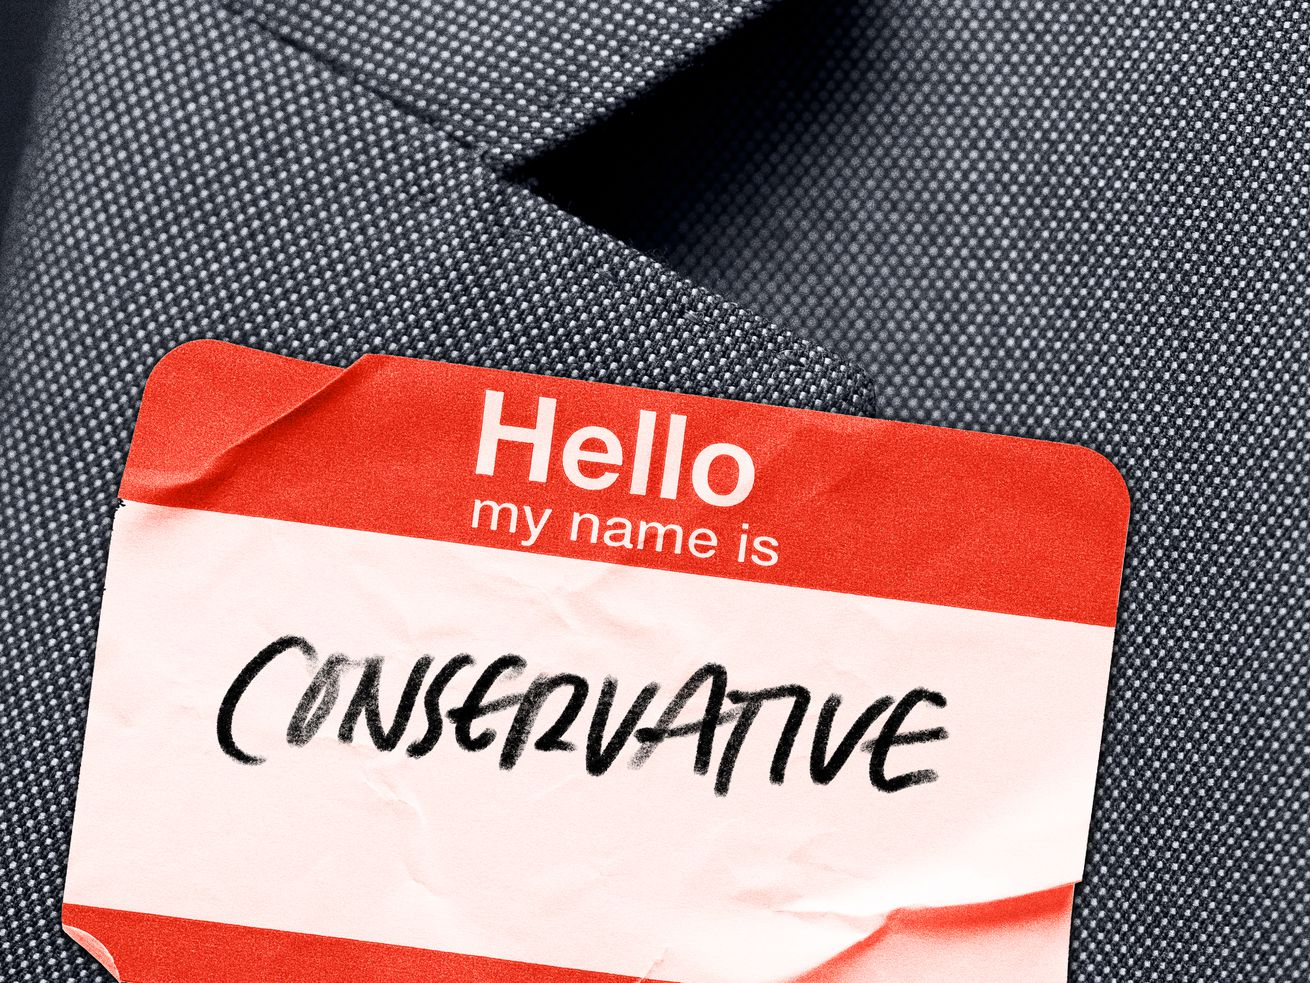 President Trump? Flake? Romney? Lee? Who gets to decide who is a conservative?